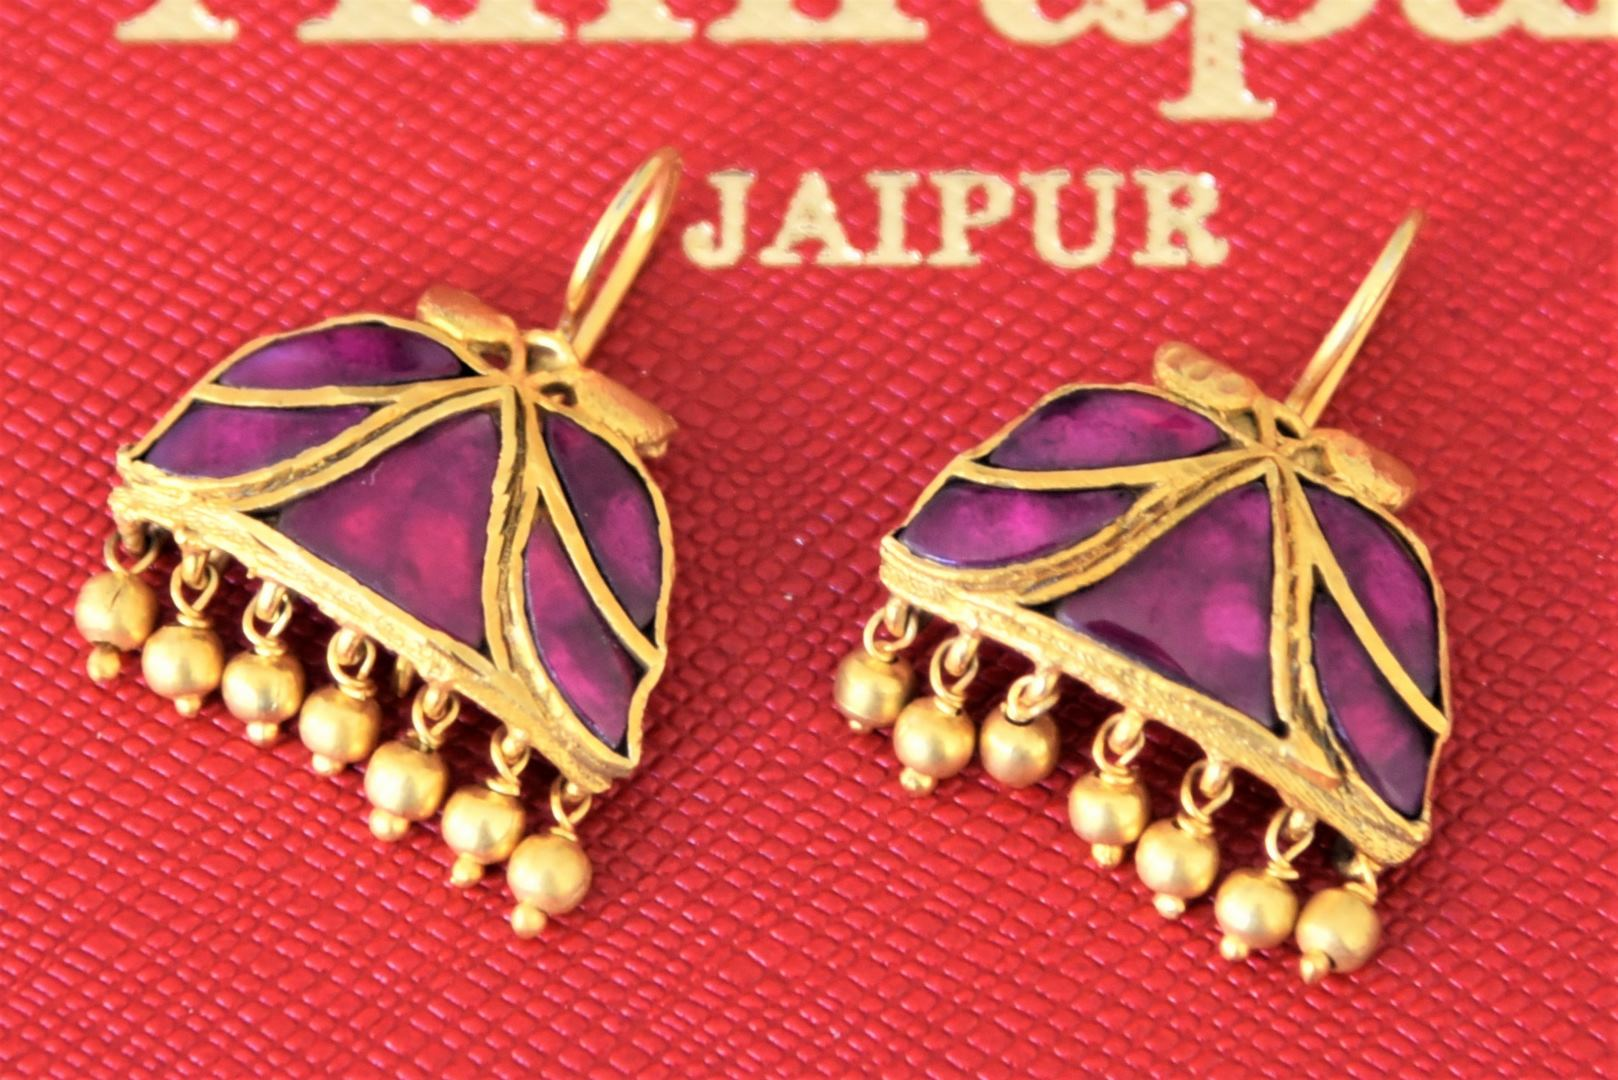 Shop silver gold plated Amethyst earrings online in USA with golden beads. Add spark to your festive style with beautiful Amrapali gold plated jewellery in USA from Pure Elegance Indian fashion store.-full view